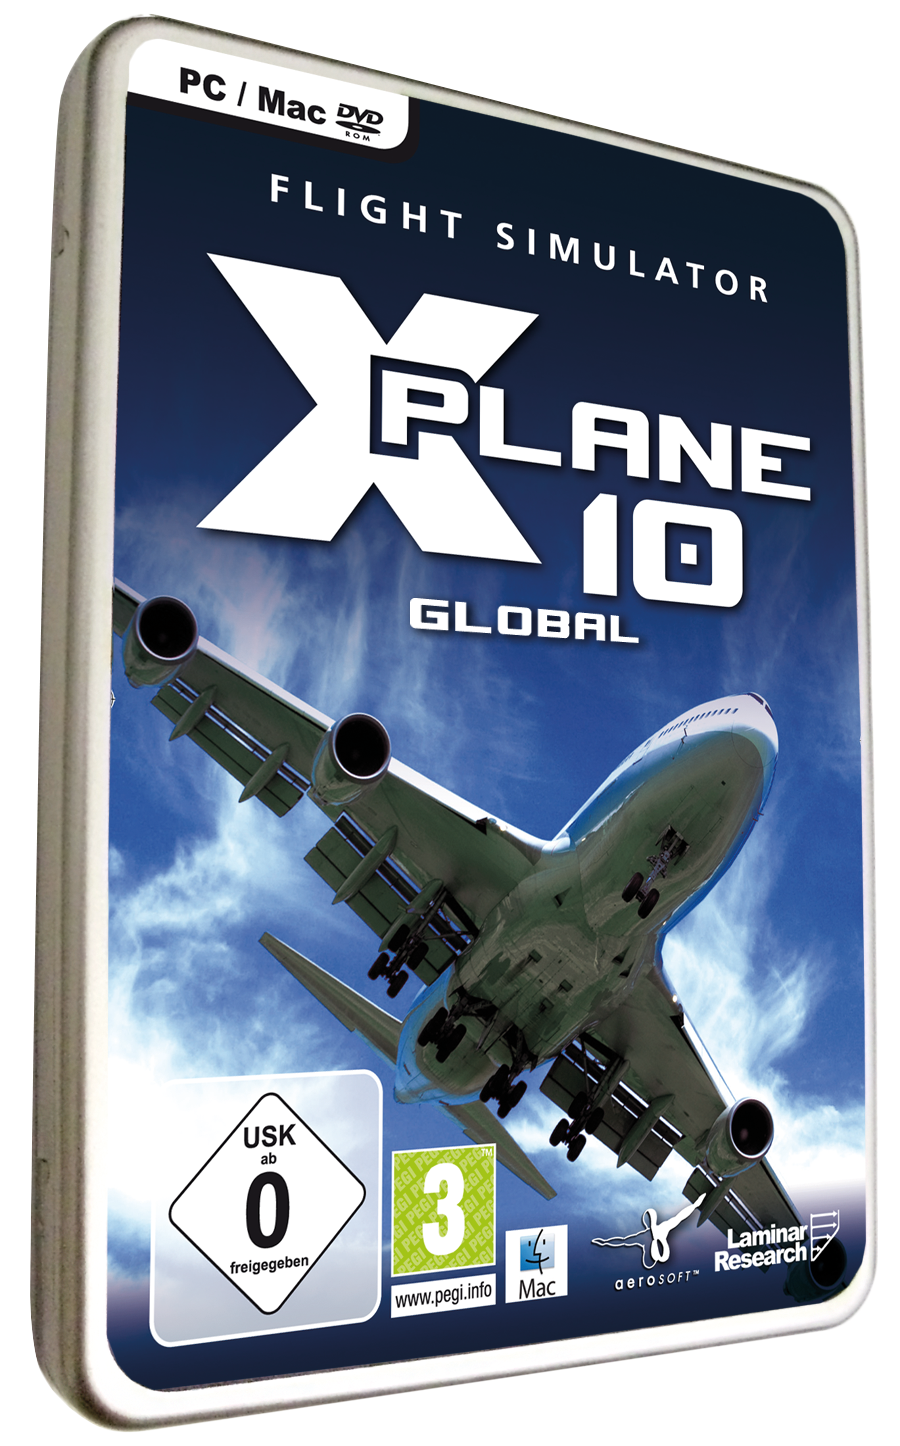 XPlane10_Global_PC_Simulator_3D_de